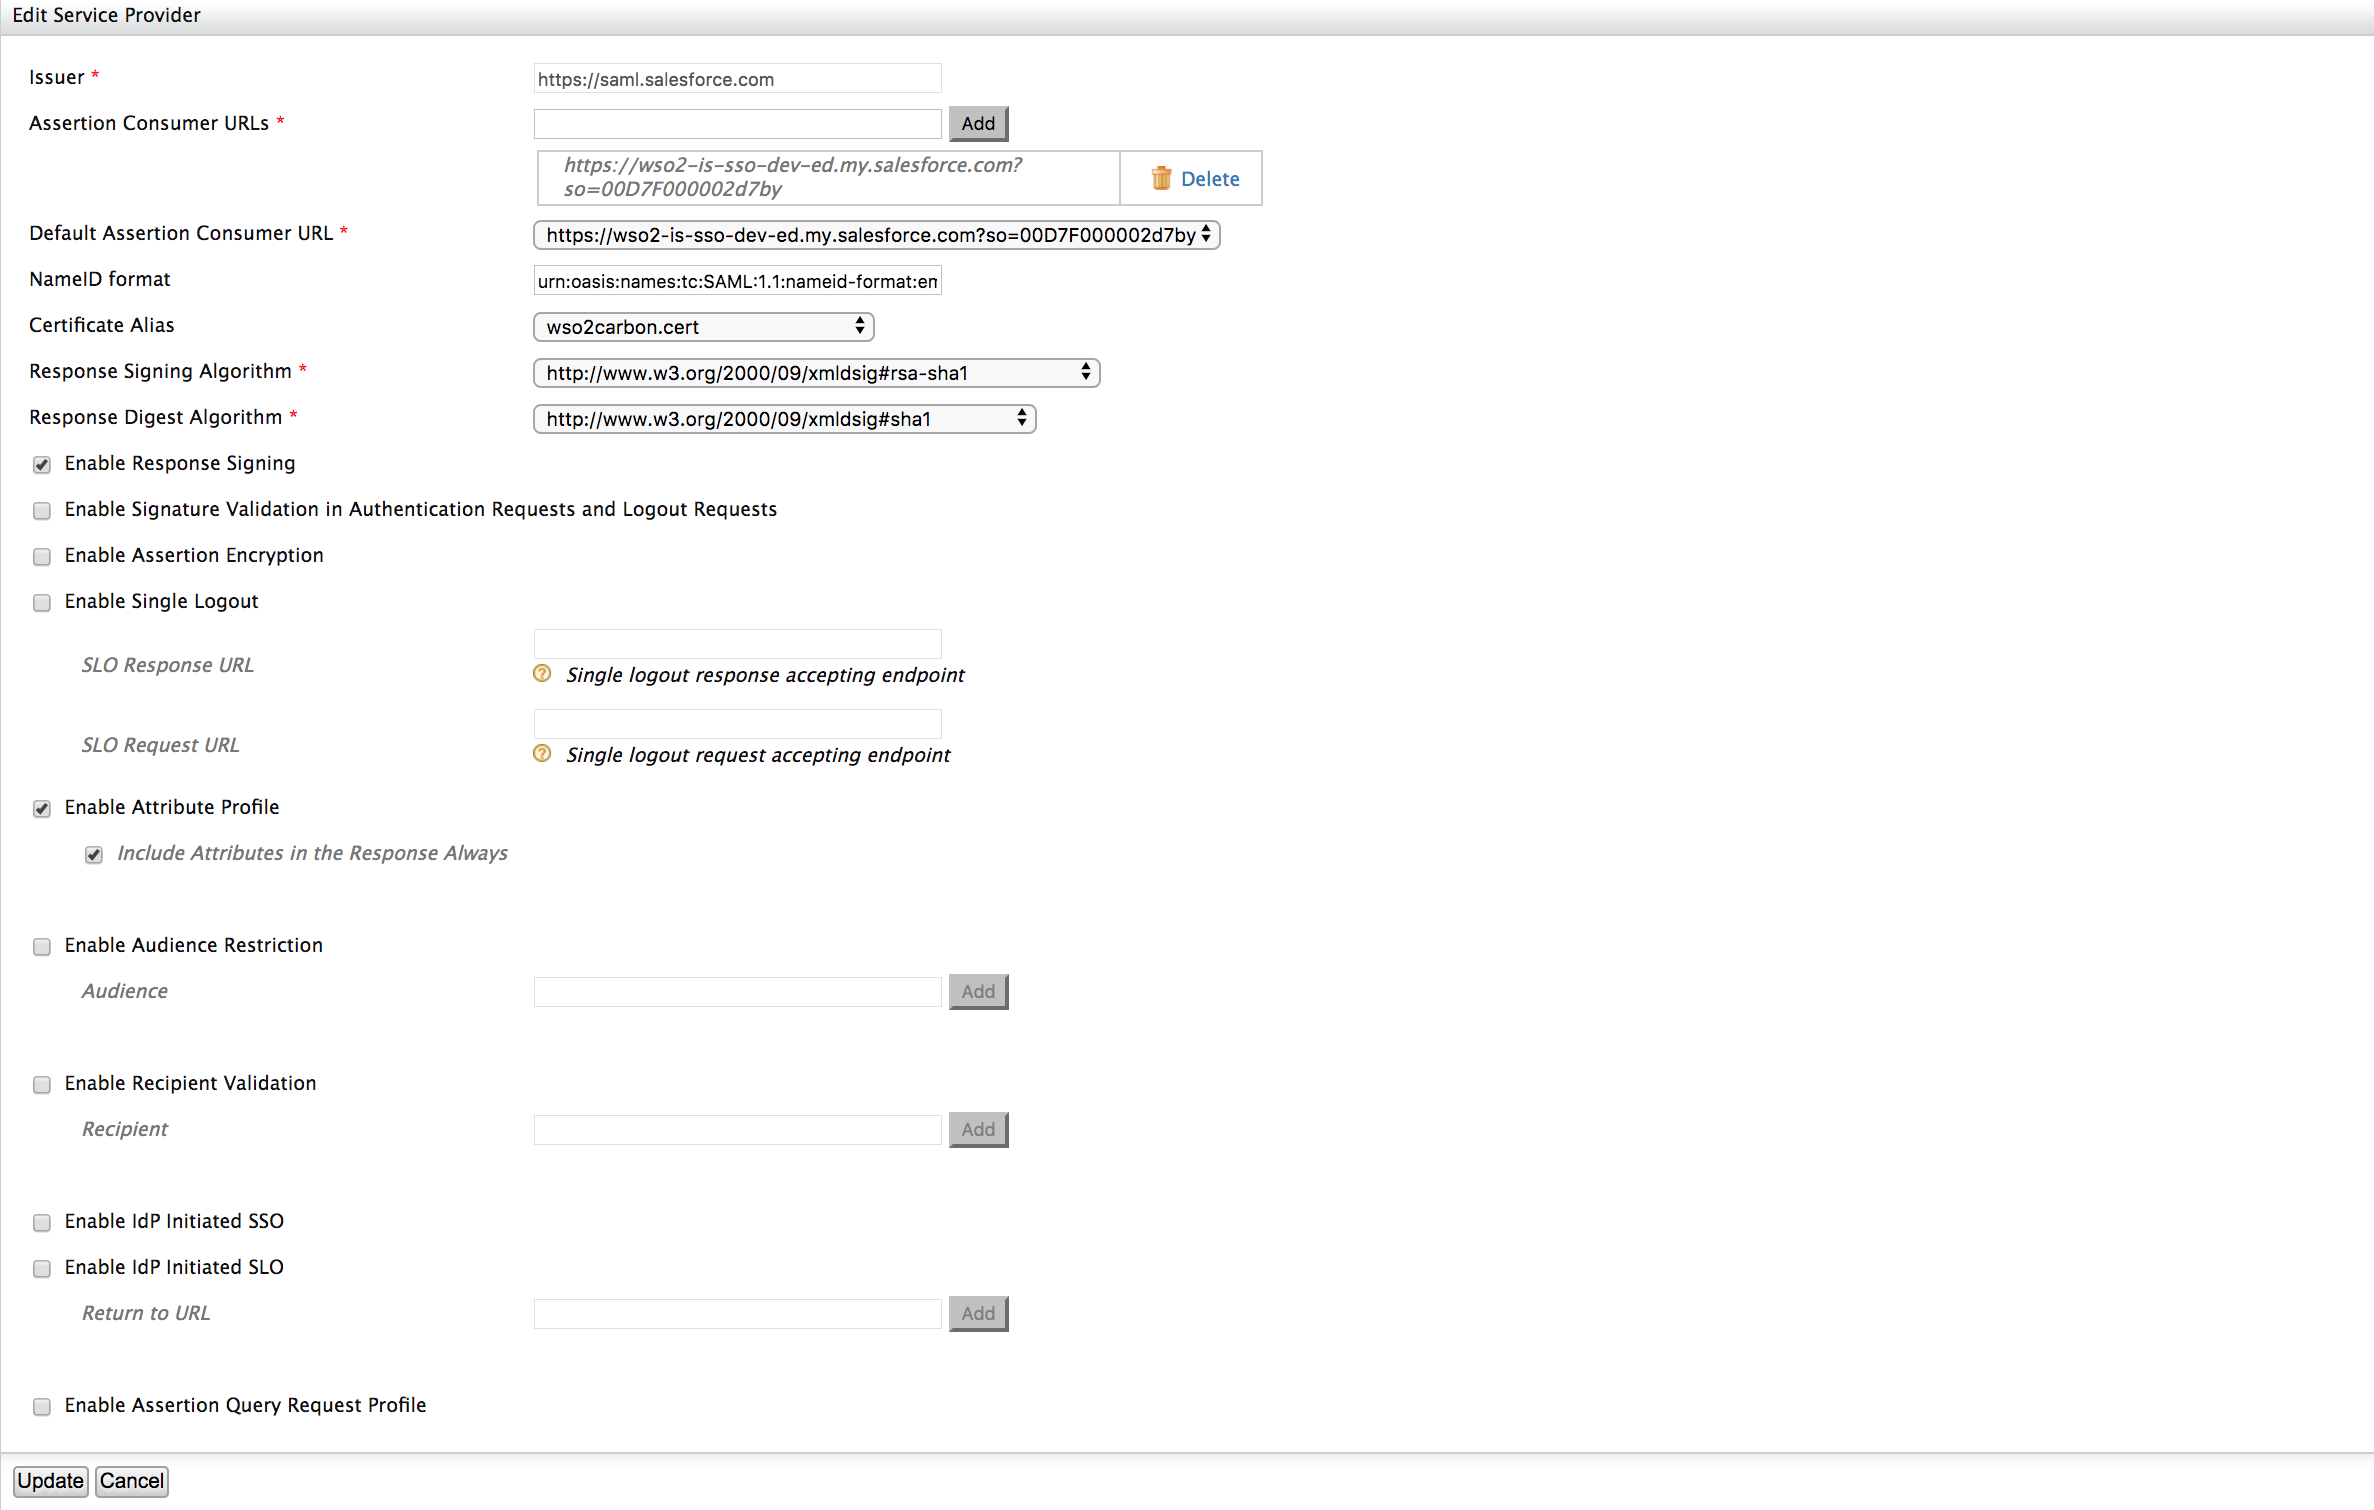 Logging in to Salesforce using the Identity Server